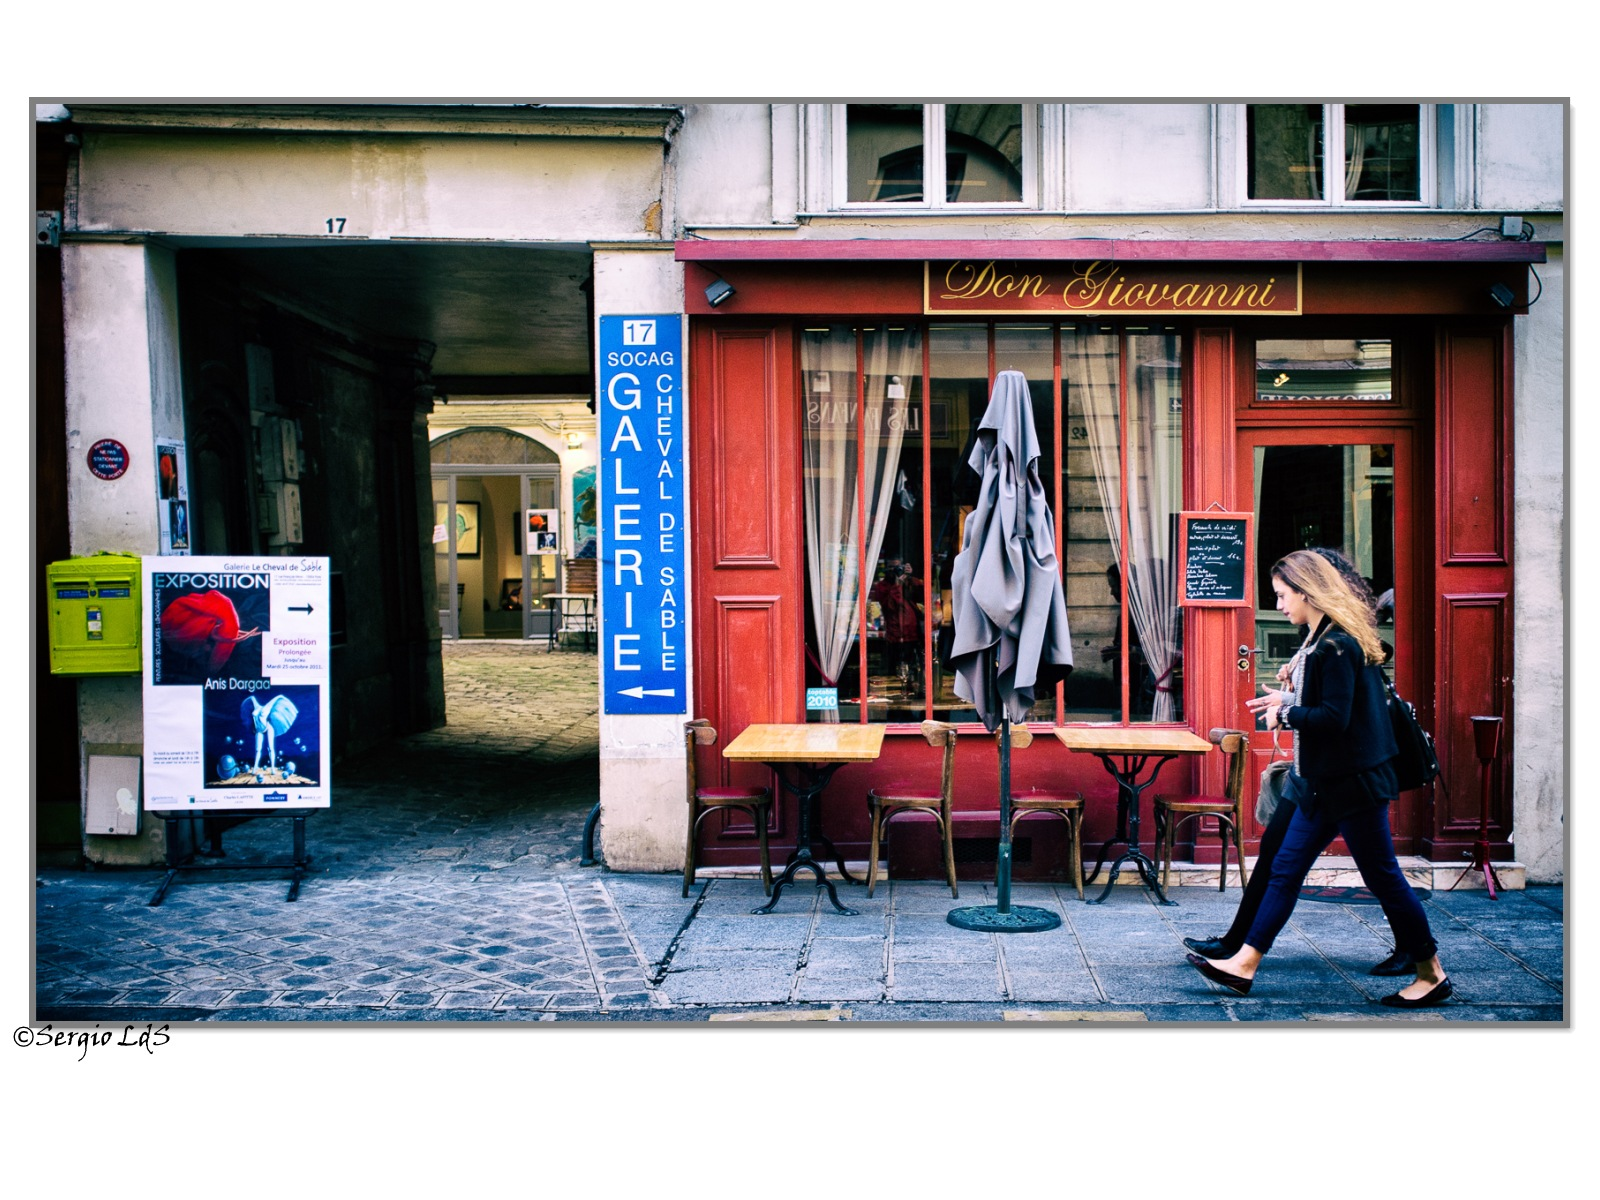 Streets (2) by sergiolds